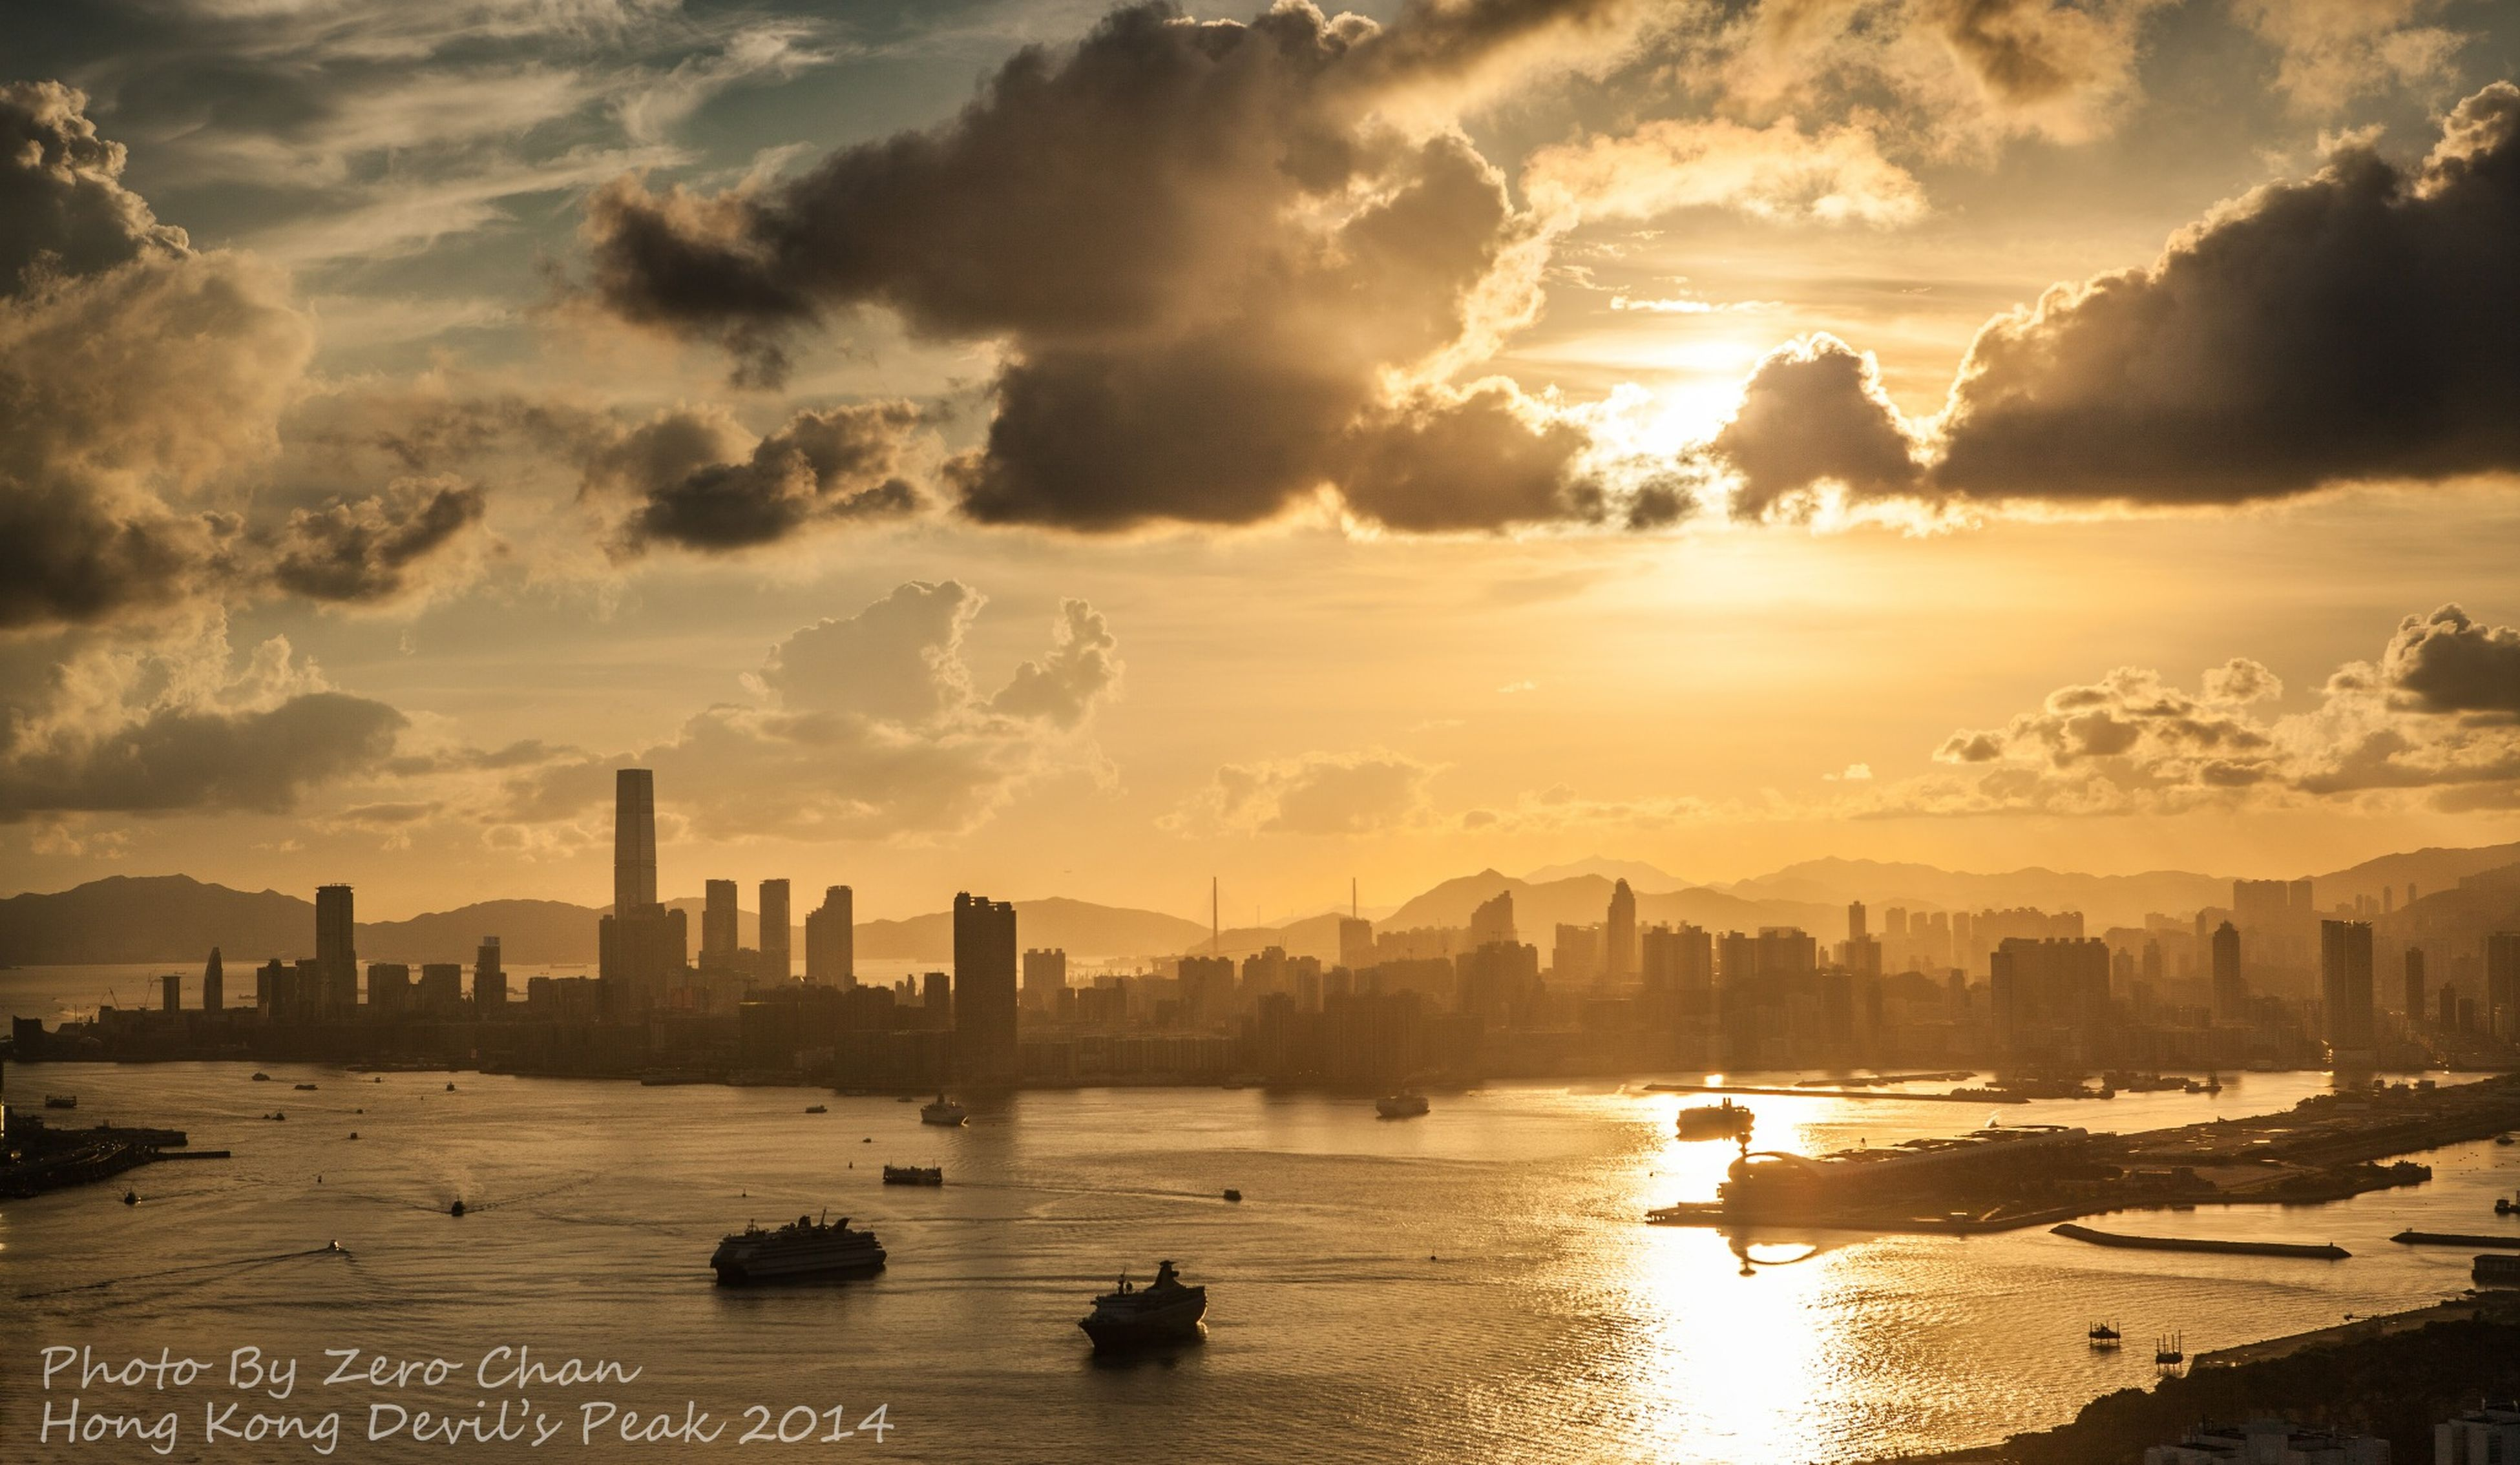 water, city, sunset, architecture, building exterior, built structure, cityscape, waterfront, sky, skyscraper, sea, silhouette, urban skyline, river, cloud - sky, nautical vessel, tall - high, reflection, transportation, tower